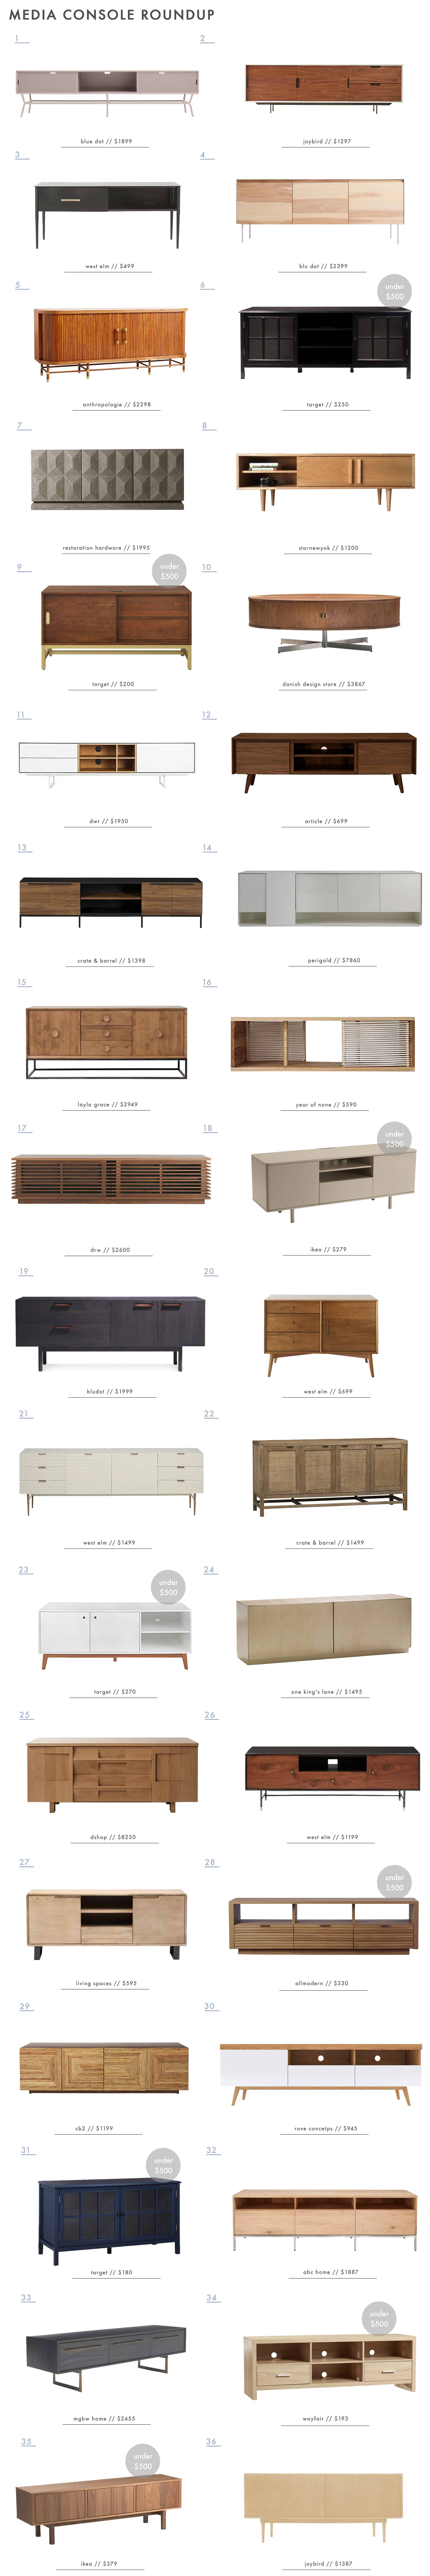 Emily Henderson Tv Stands Media Consoles Roundup2